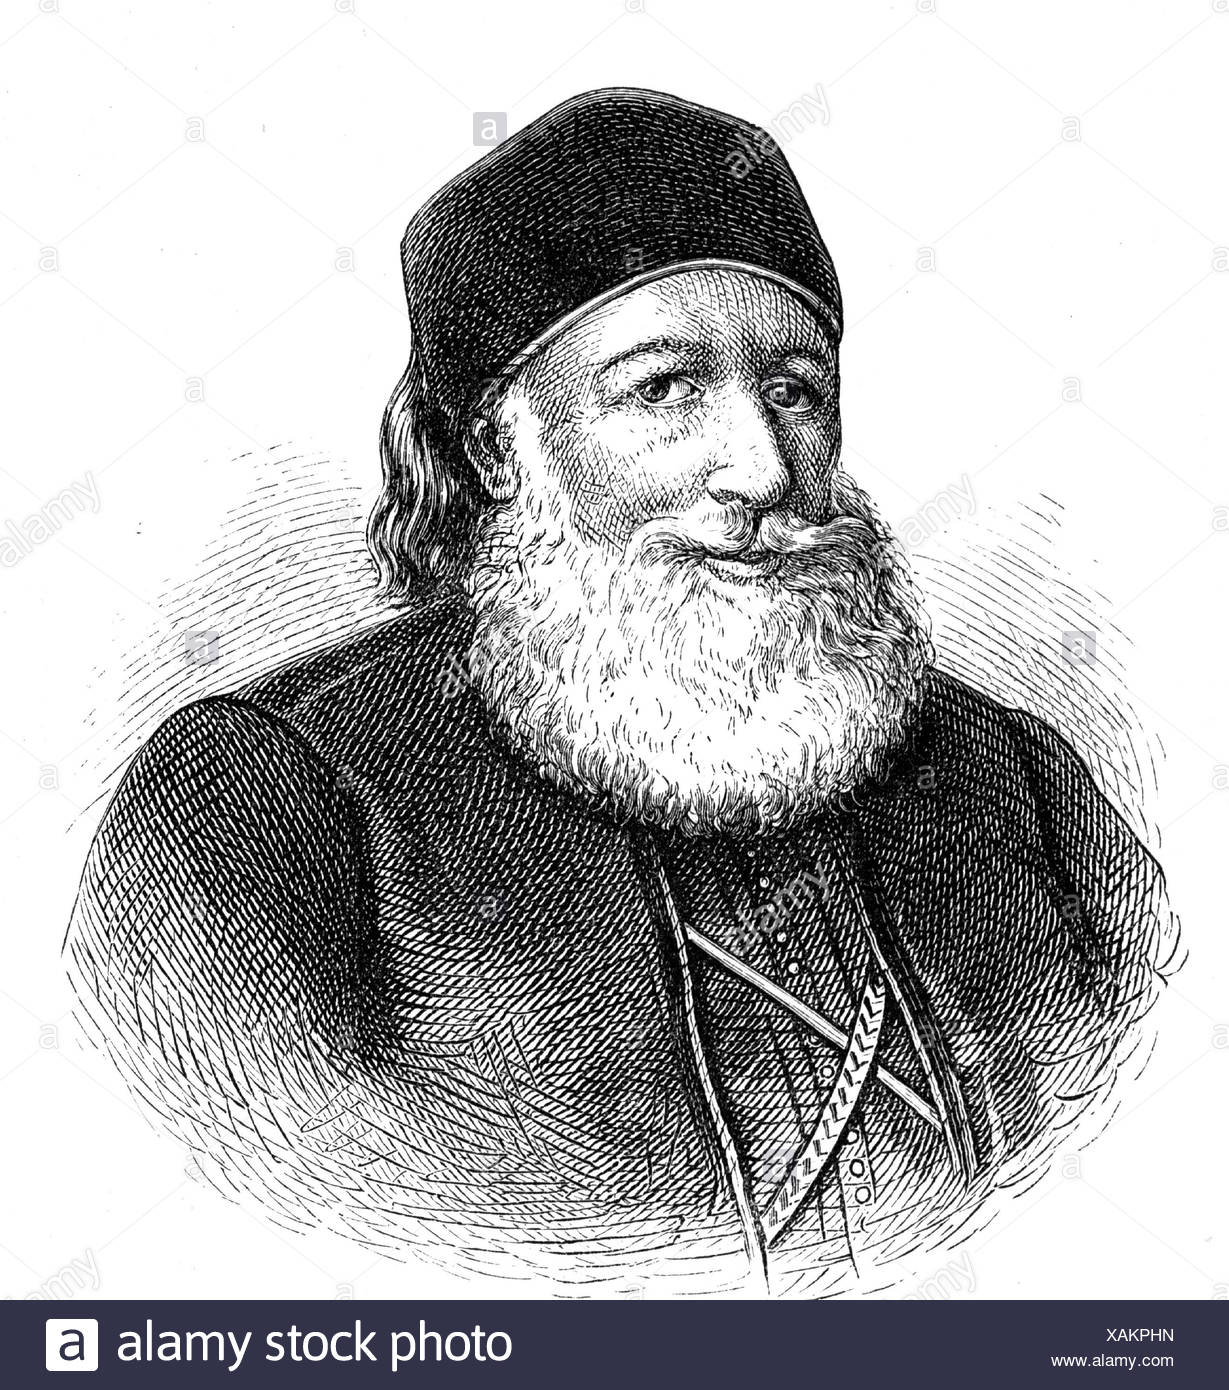 Muhammad Ali, 1769 - 12.8.1849, Khedive of Egypt 13.2.1841 - 12.8.1849, portrait, wood engraving, 19th century, , Additional-Rights-Clearances-NA - Stock Image